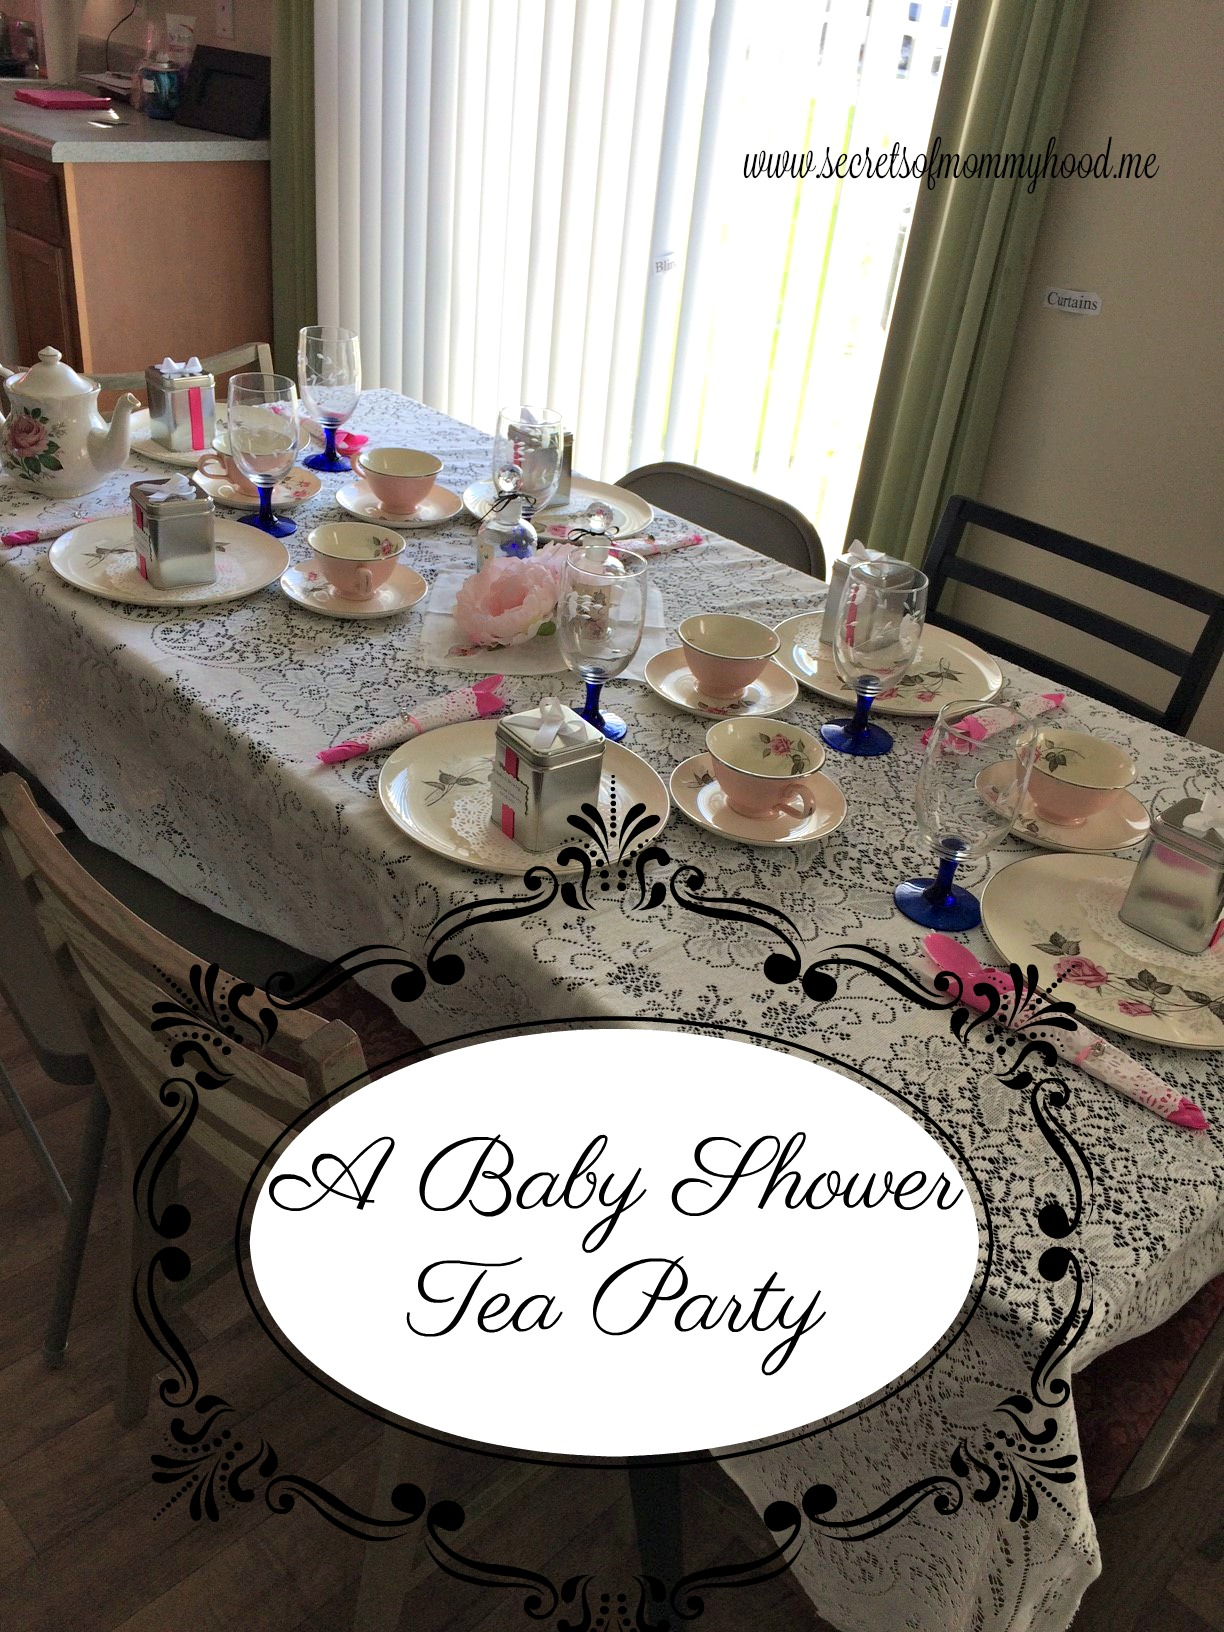 I Recently Had The Privilege Of Throwing A Baby Shower For A Dear Friend Of  Mine. I Wanted It To Be Elegant And Very Special For Her.